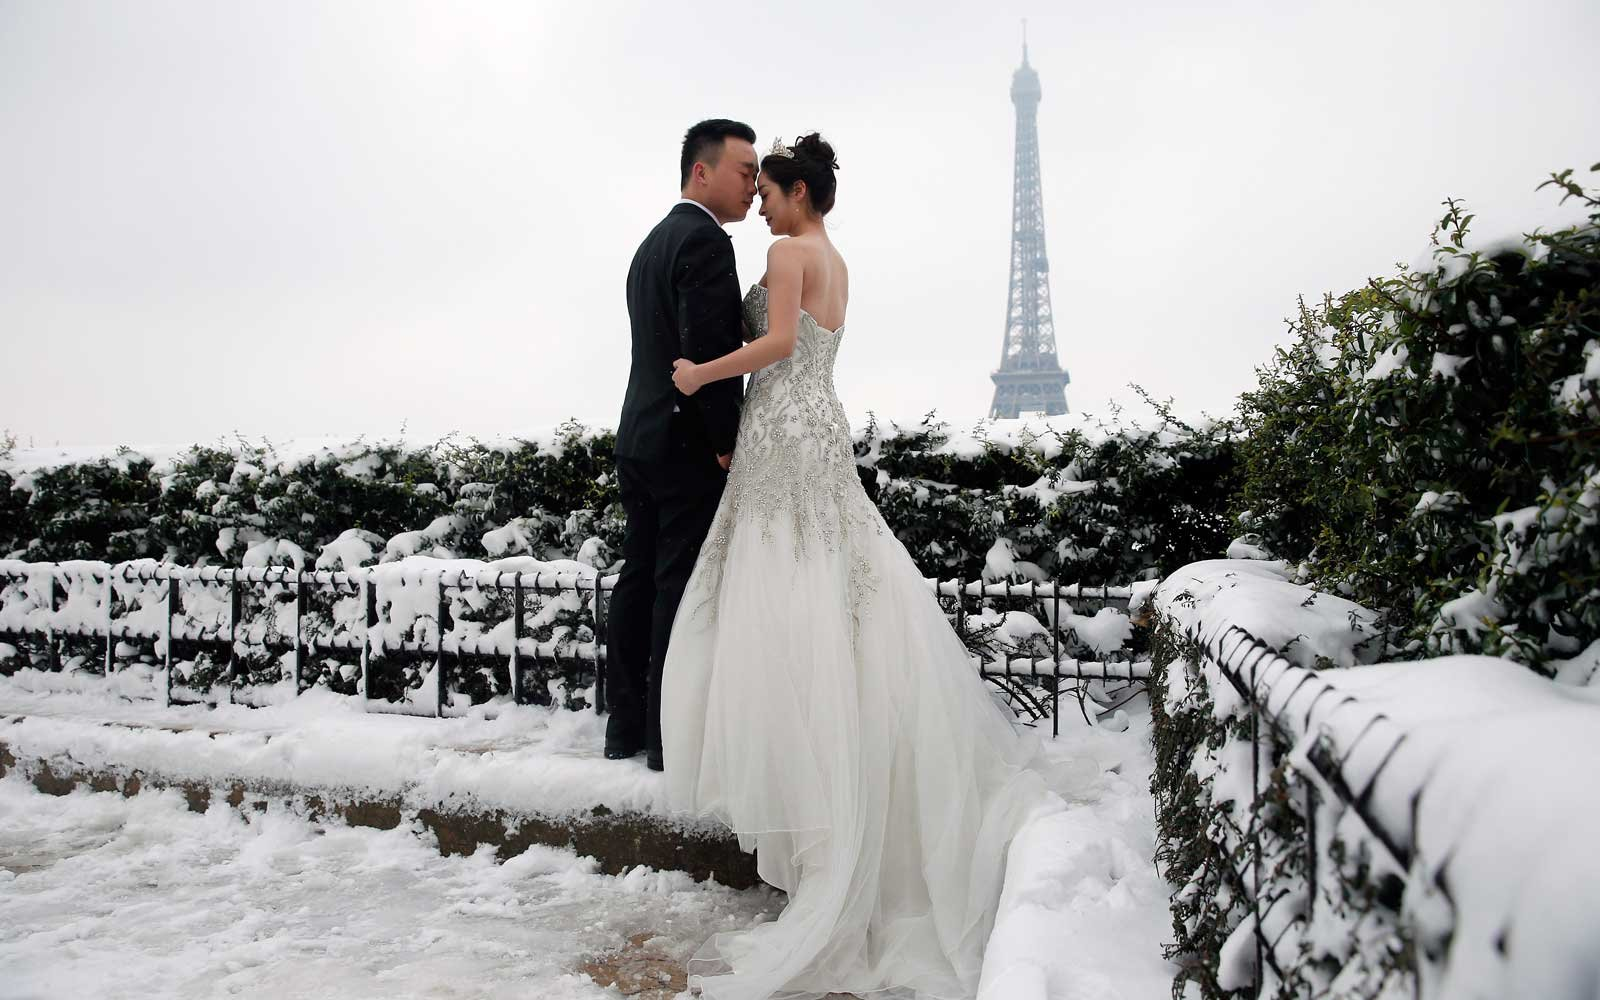 A wedding couple  pose for their own photographer in front of the Eiffel Tower at the snow-covered Trocadero square on February 7, 2018 in Paris, France.